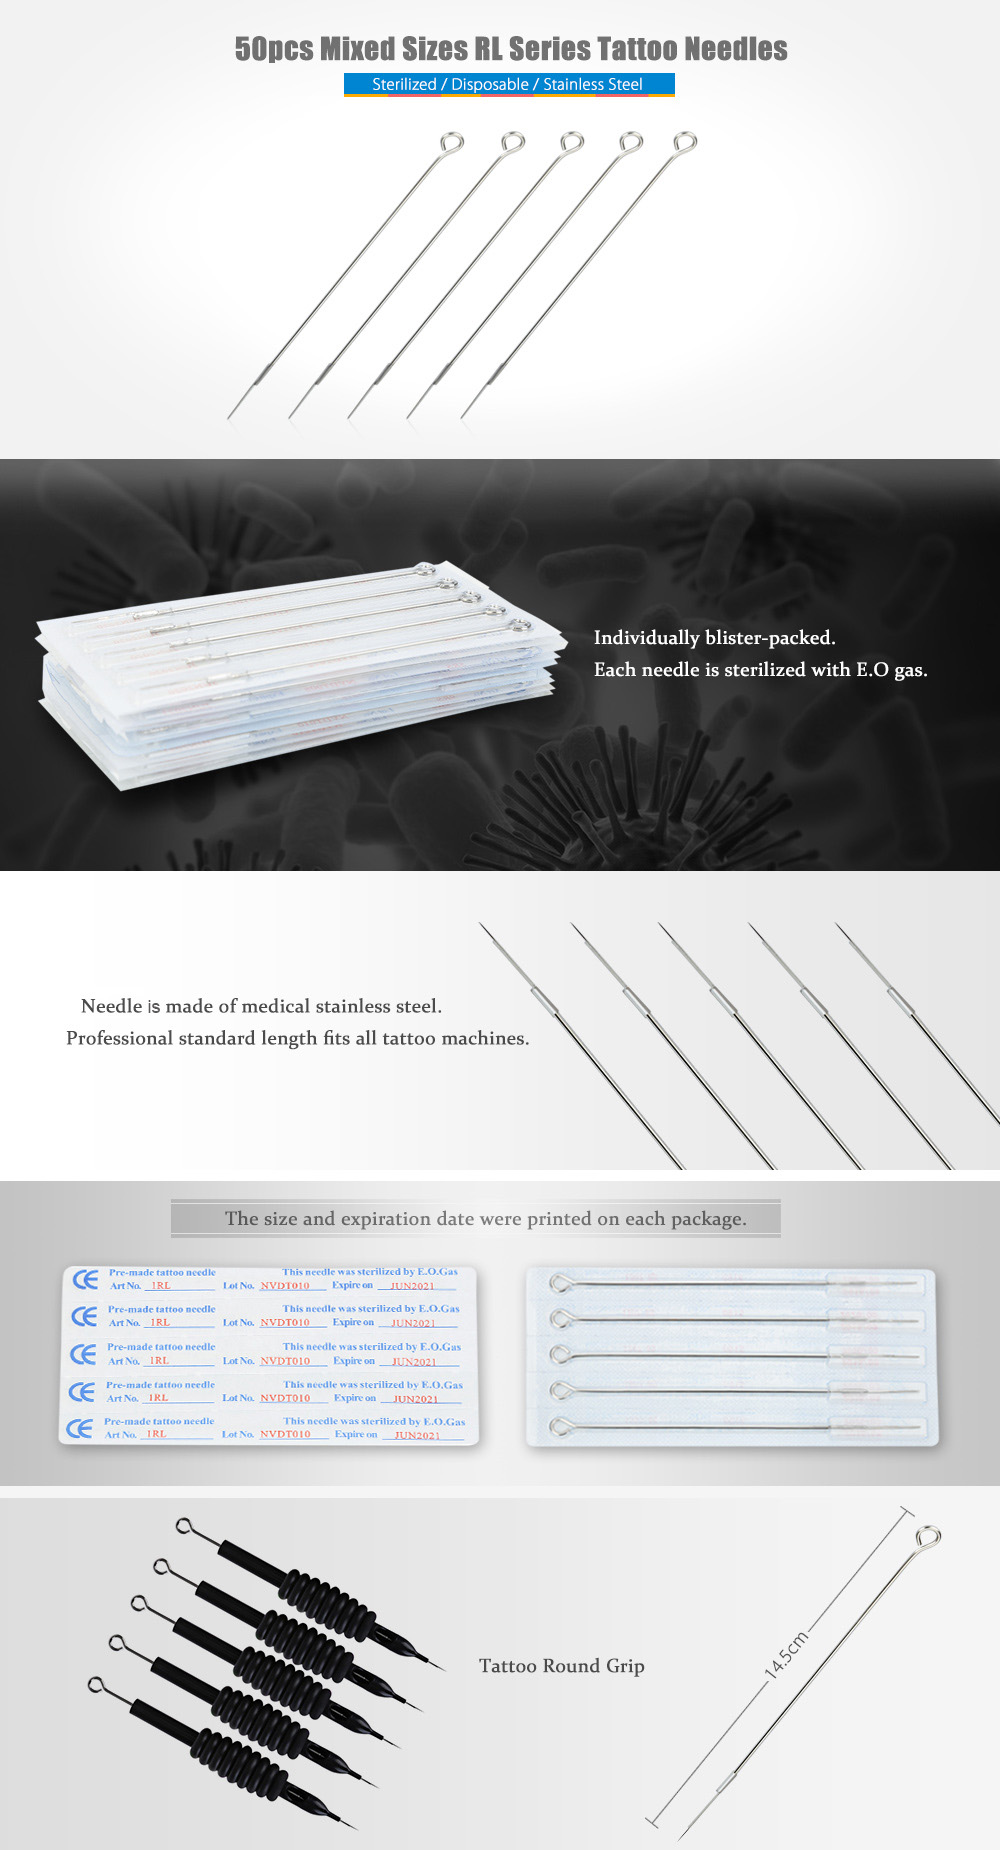 50pcs Stainless Steel Mixed Sizes RL Series Disposable Tattoo Needles for Round Grip